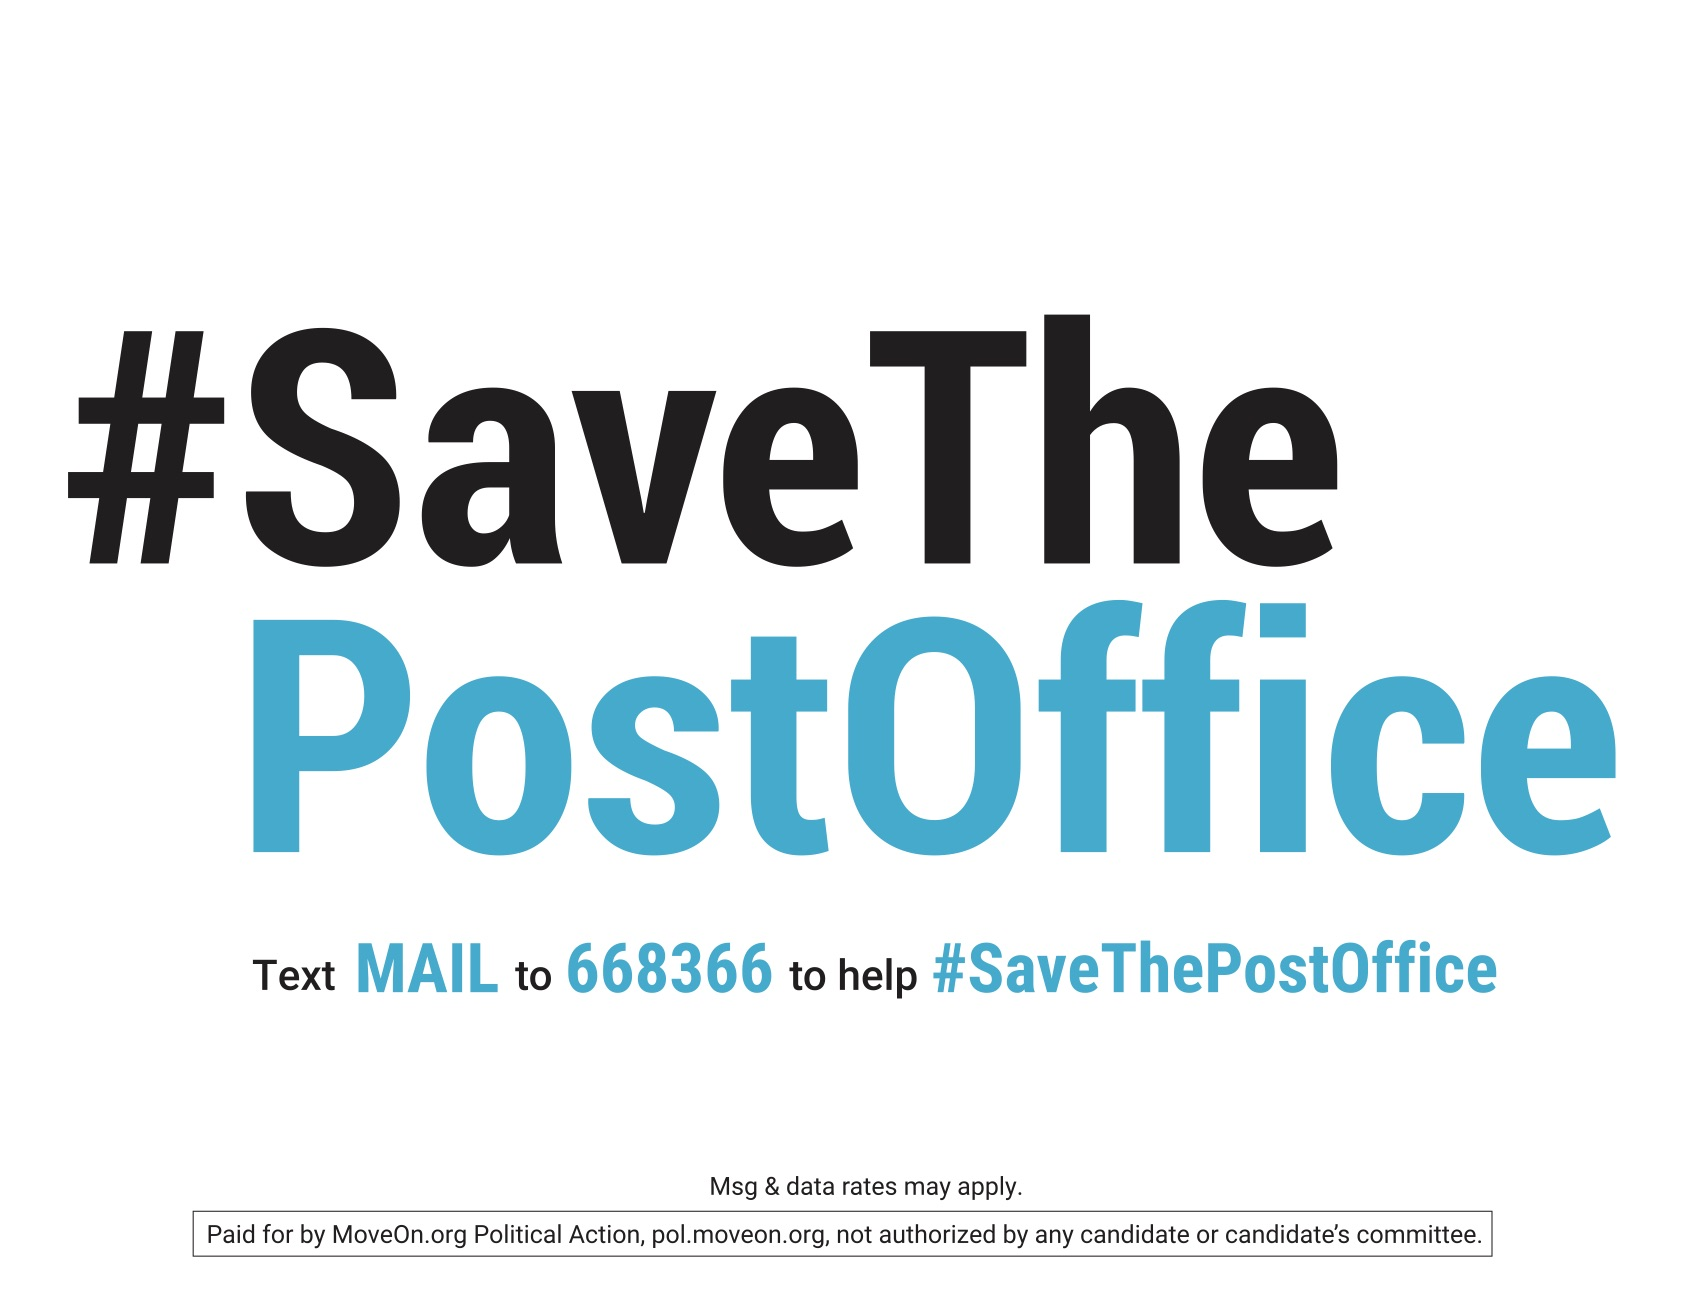 Save the post office sign